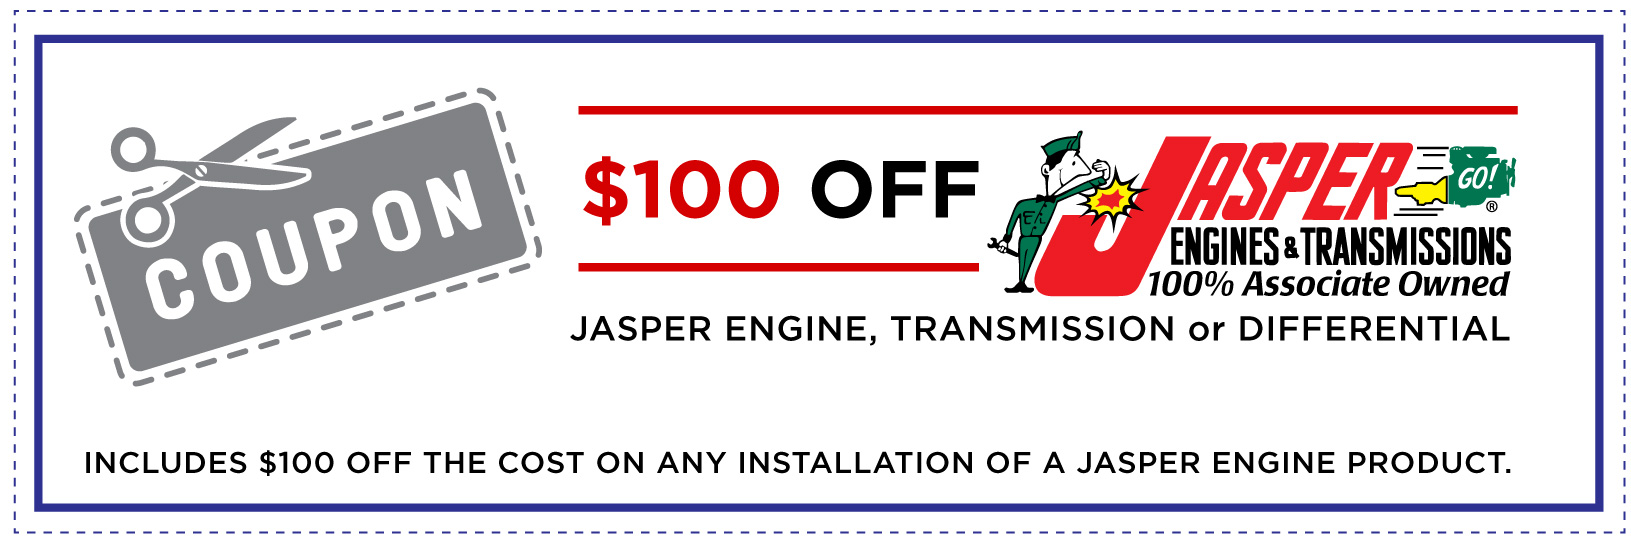 Jasper Engines Pitts Automotive Inc Tuscaloosa Al